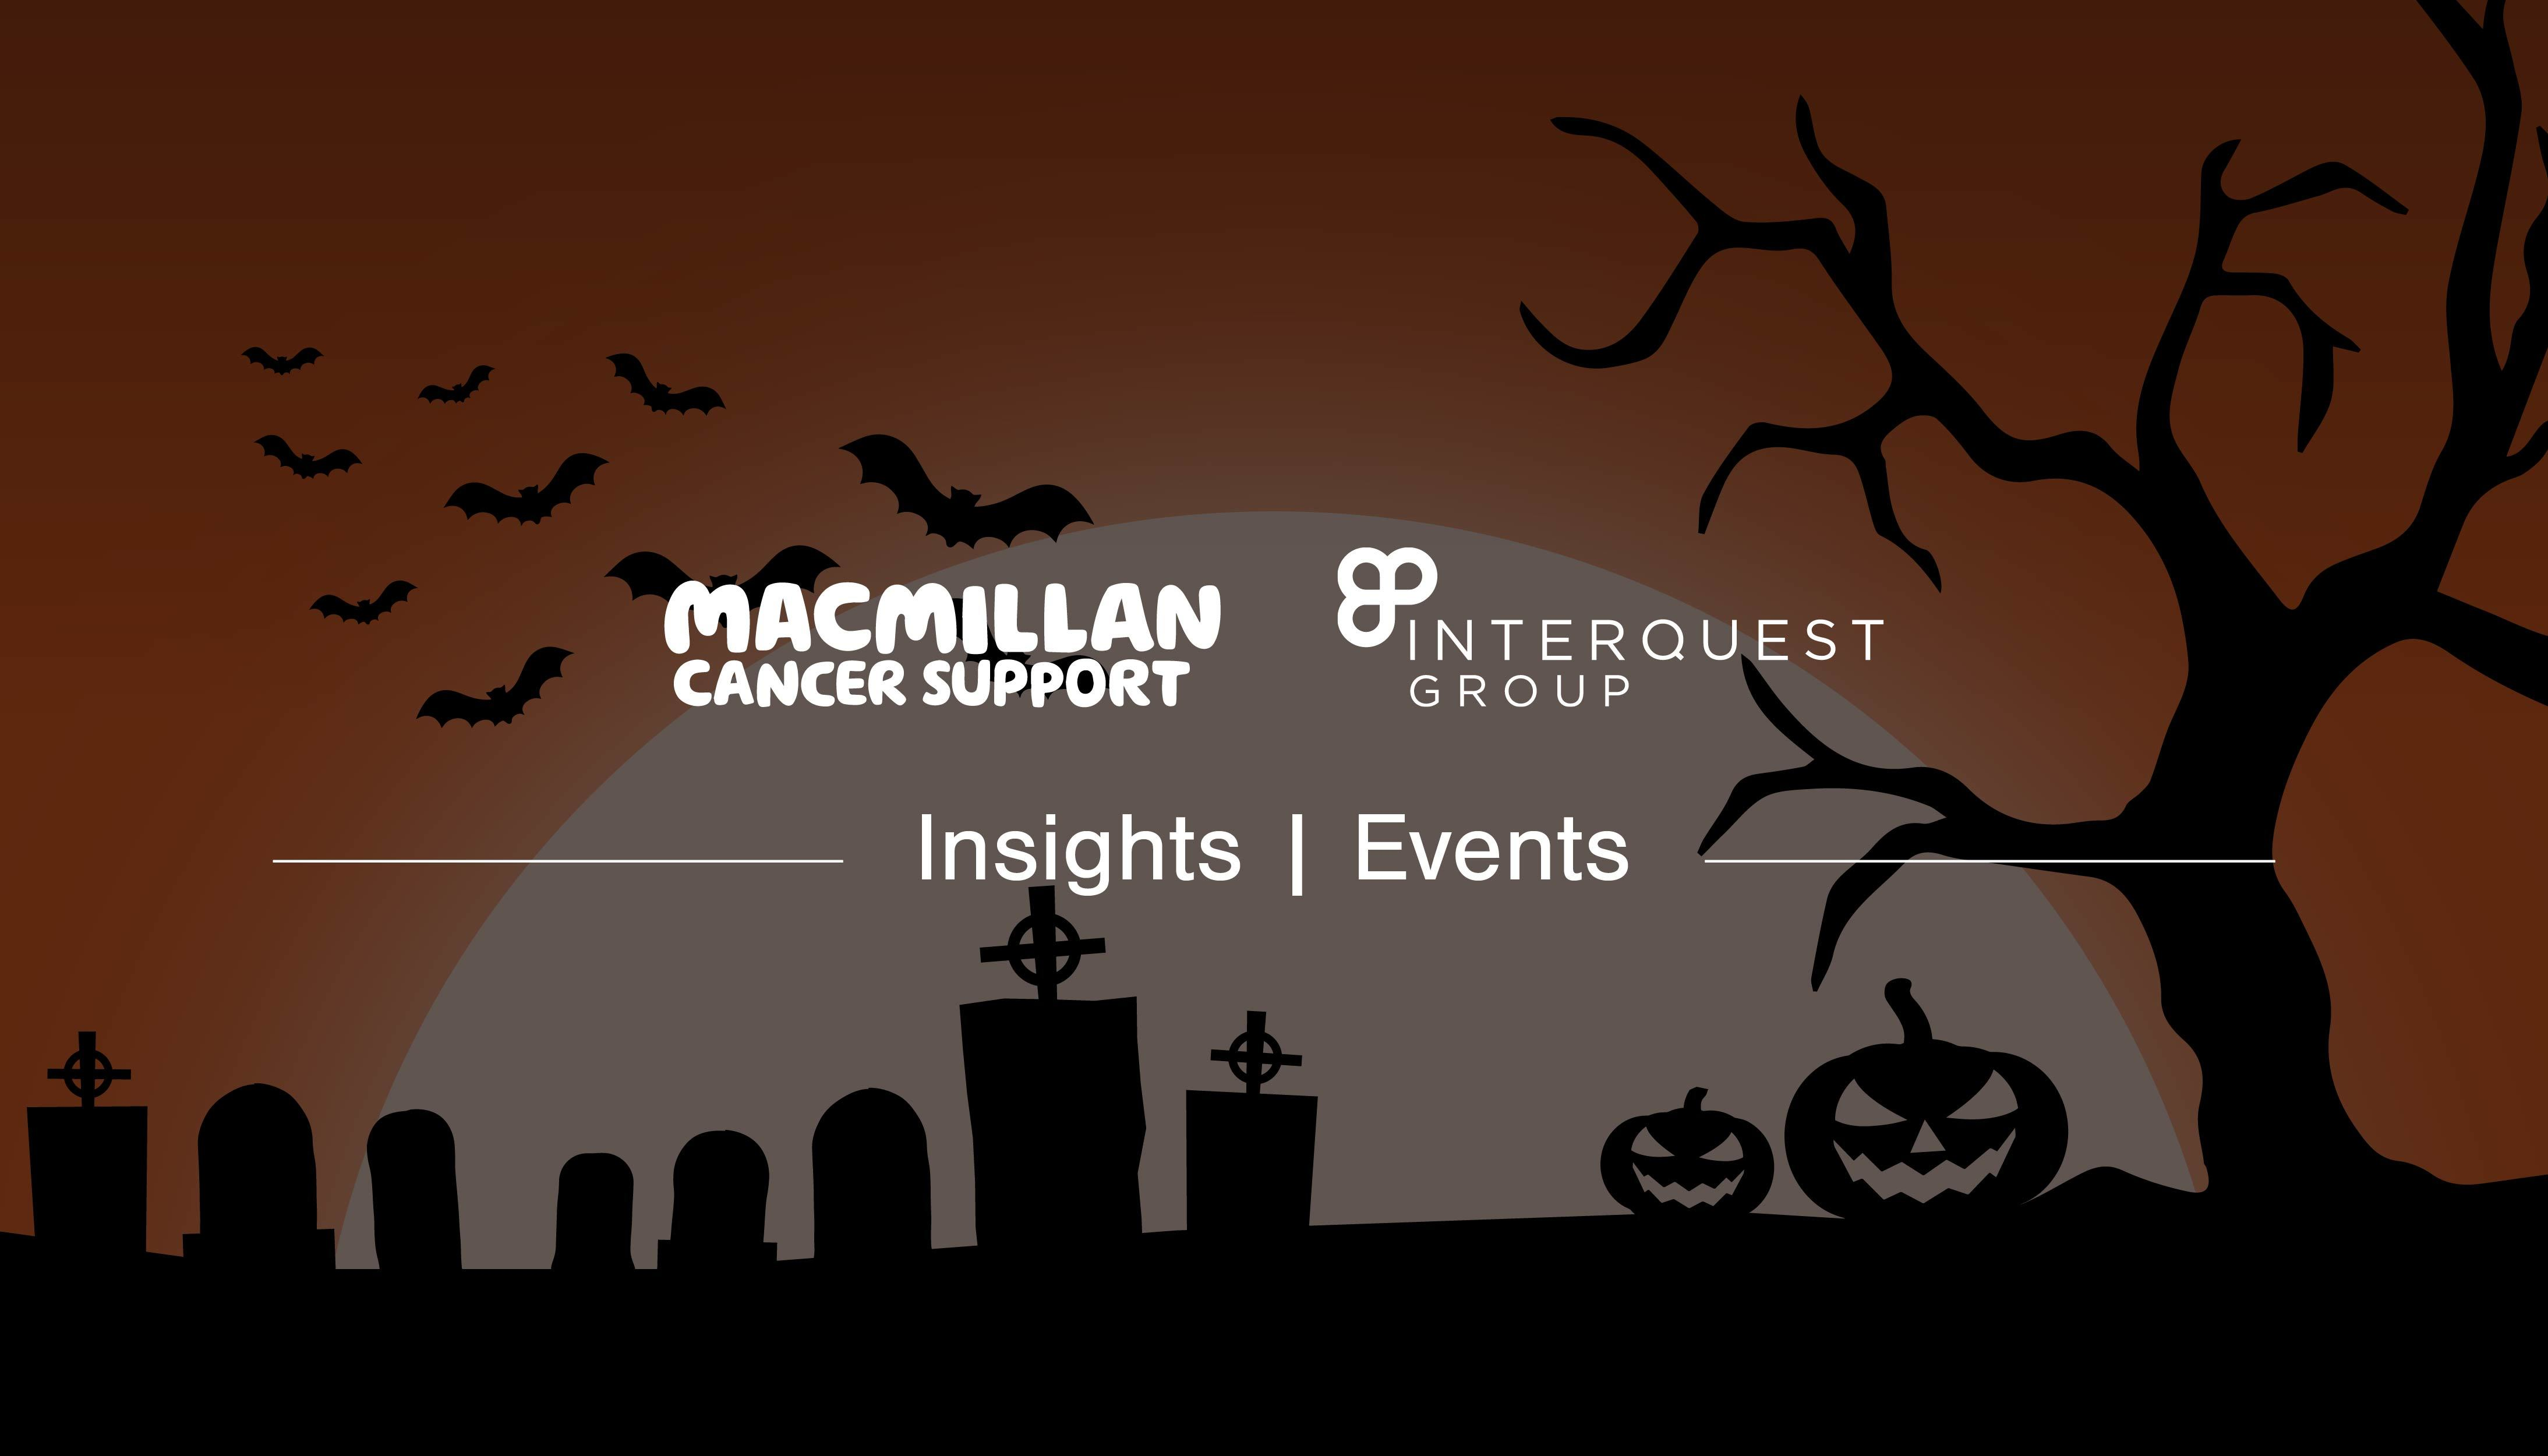 Halloween blog banner with InterQuest Group and Macmillan Cancer Support logos white